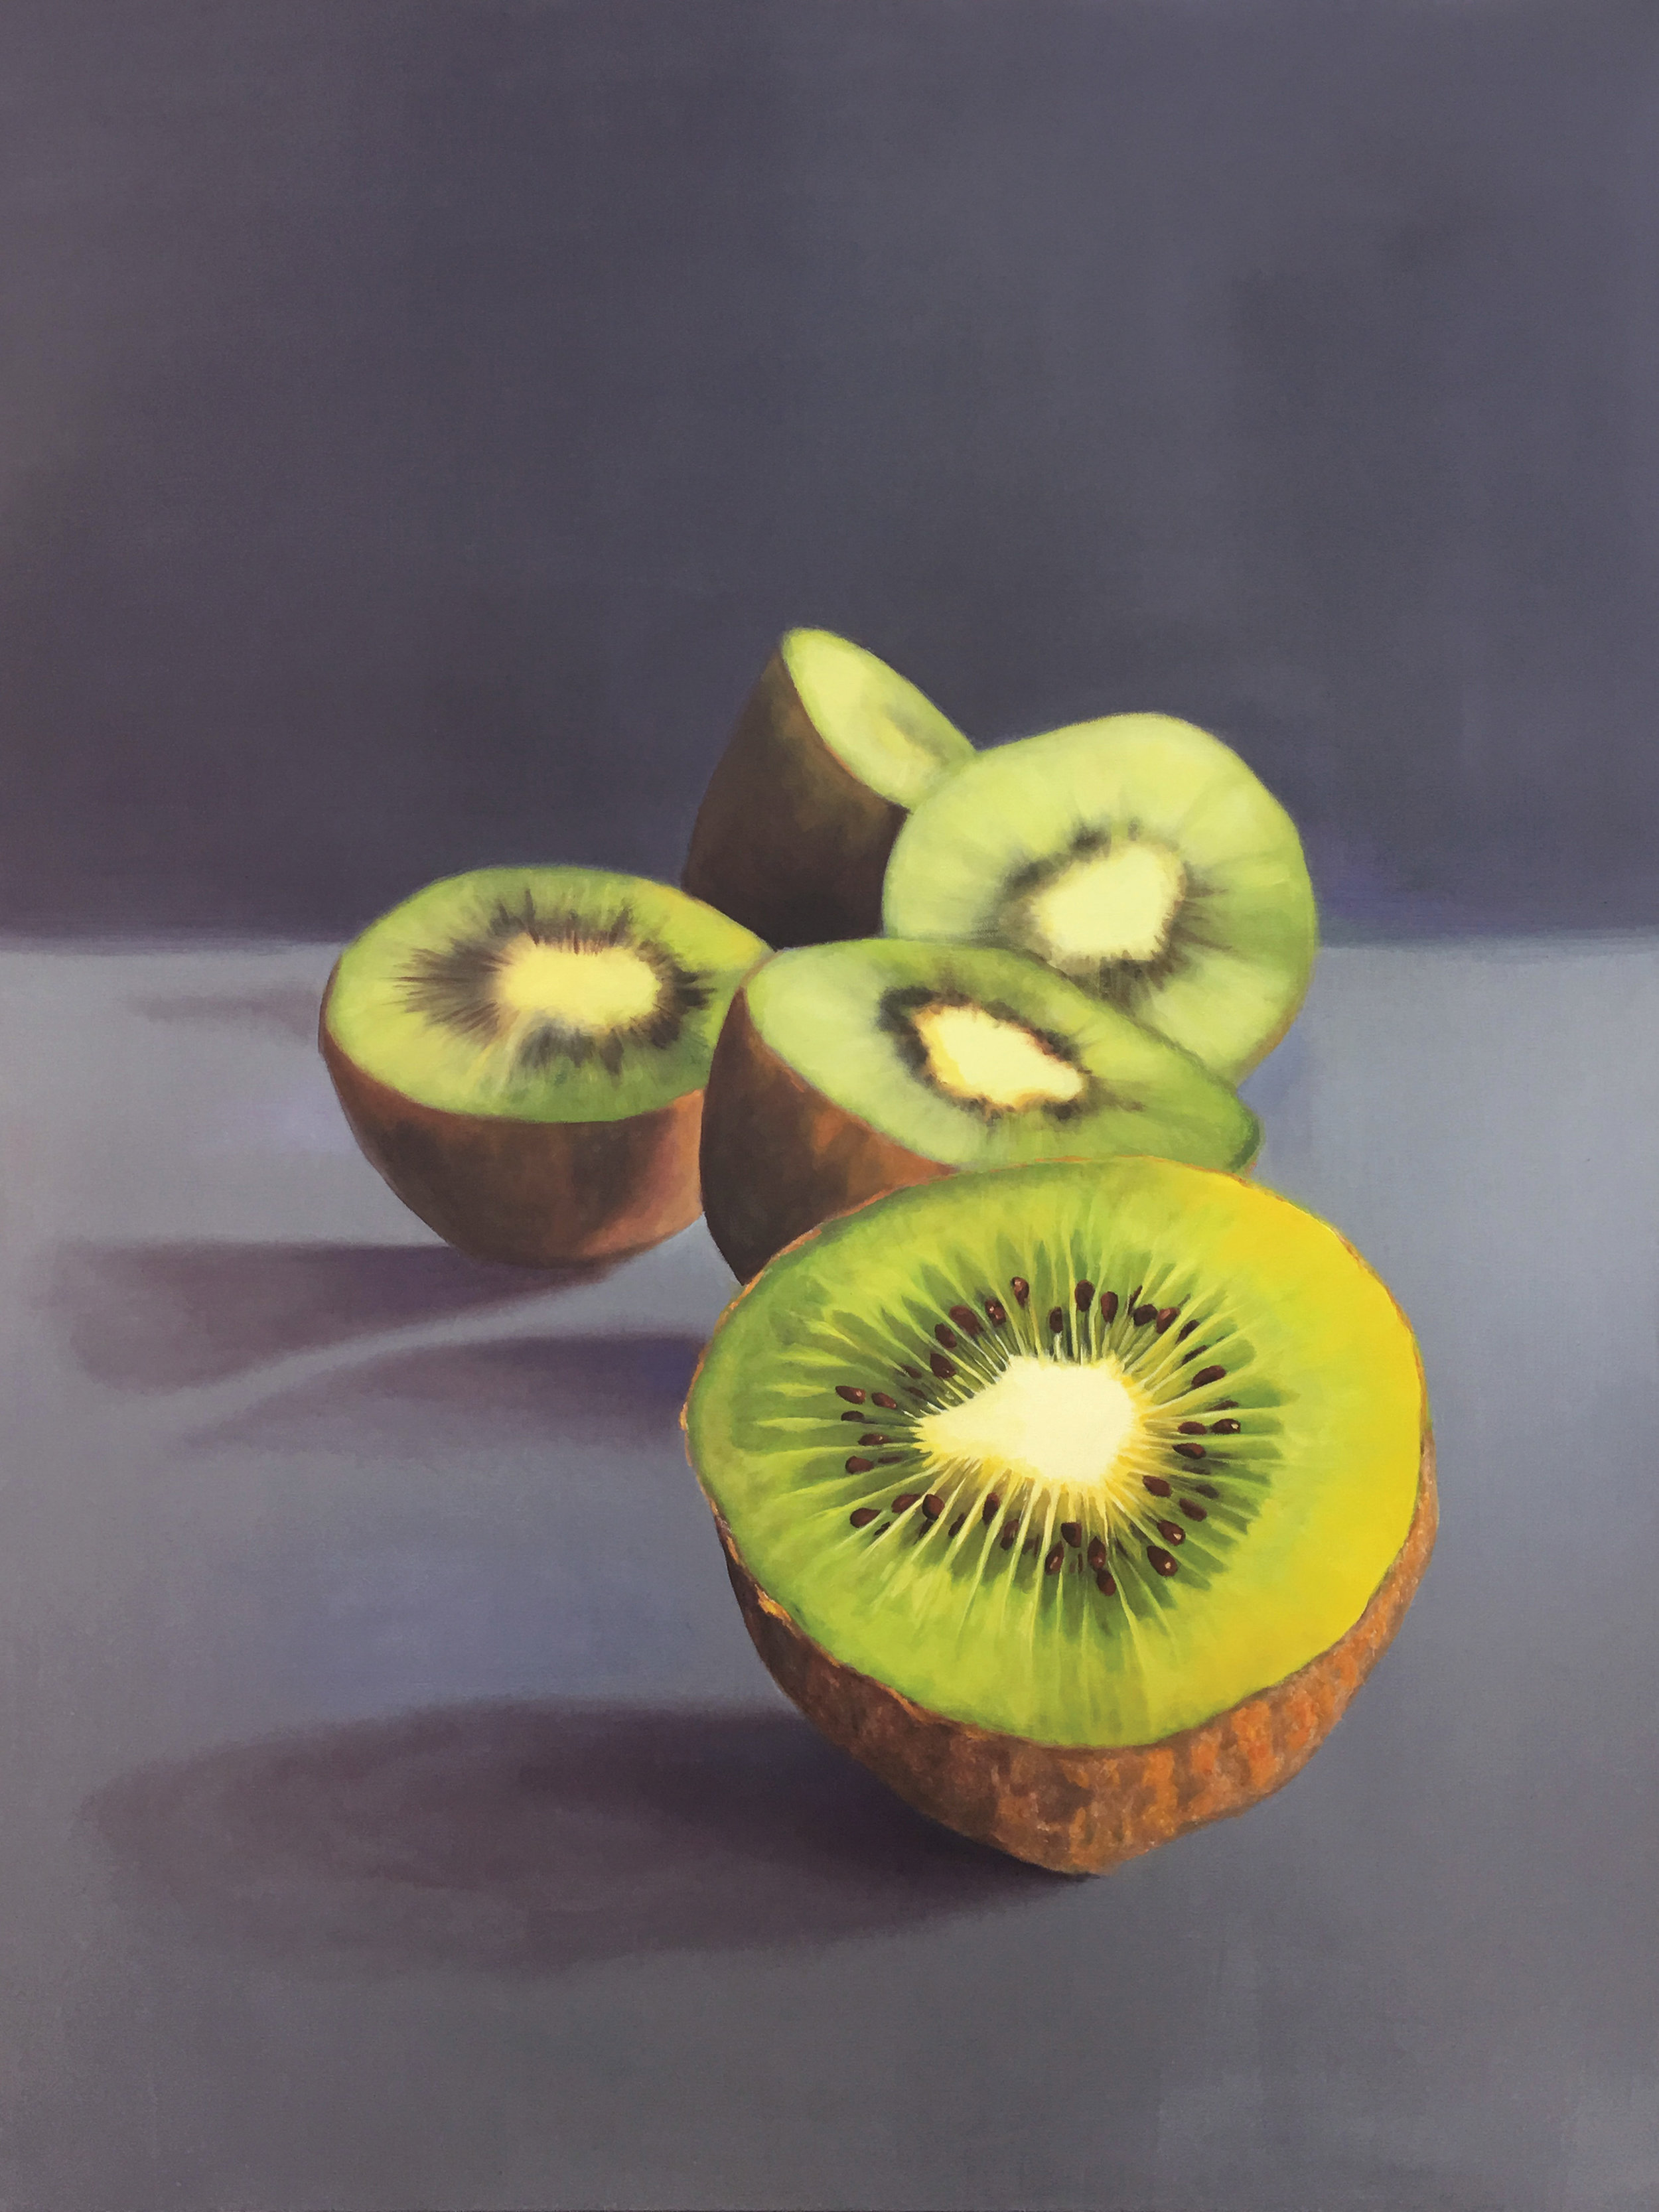 """Kiwi Rhythm'' (oil on canvas), by Sherie Harkins, in the ""Colorist'' group show at ArtProv Gallery, Providence, Aug. 8-Sept. 22."